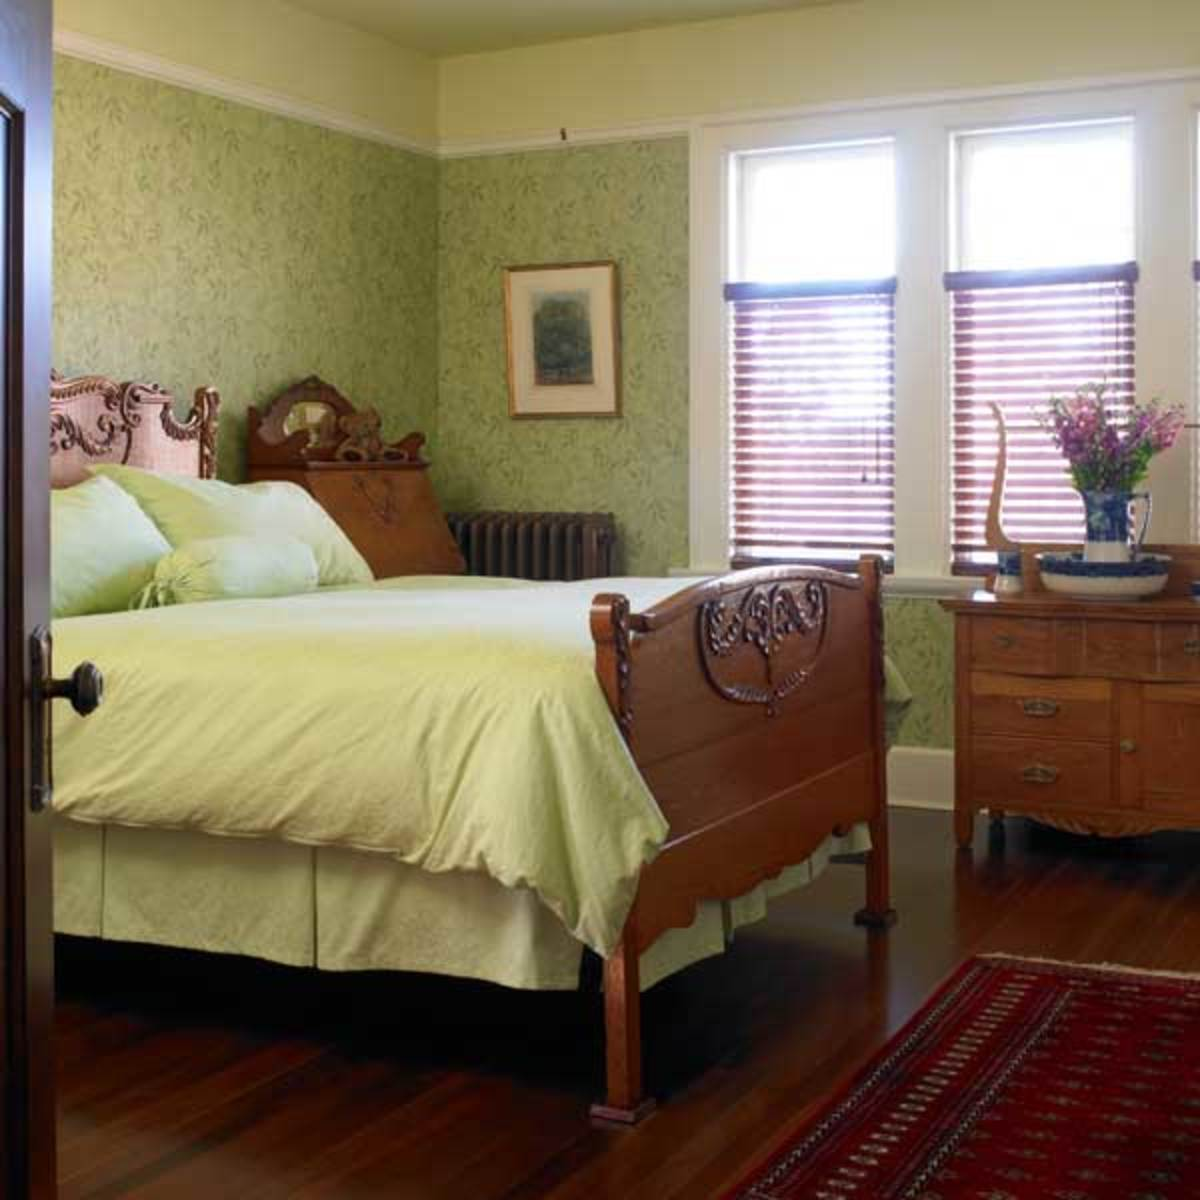 In the bedroom, wallpaper and carpet are historical reproductions; furniture is antique.